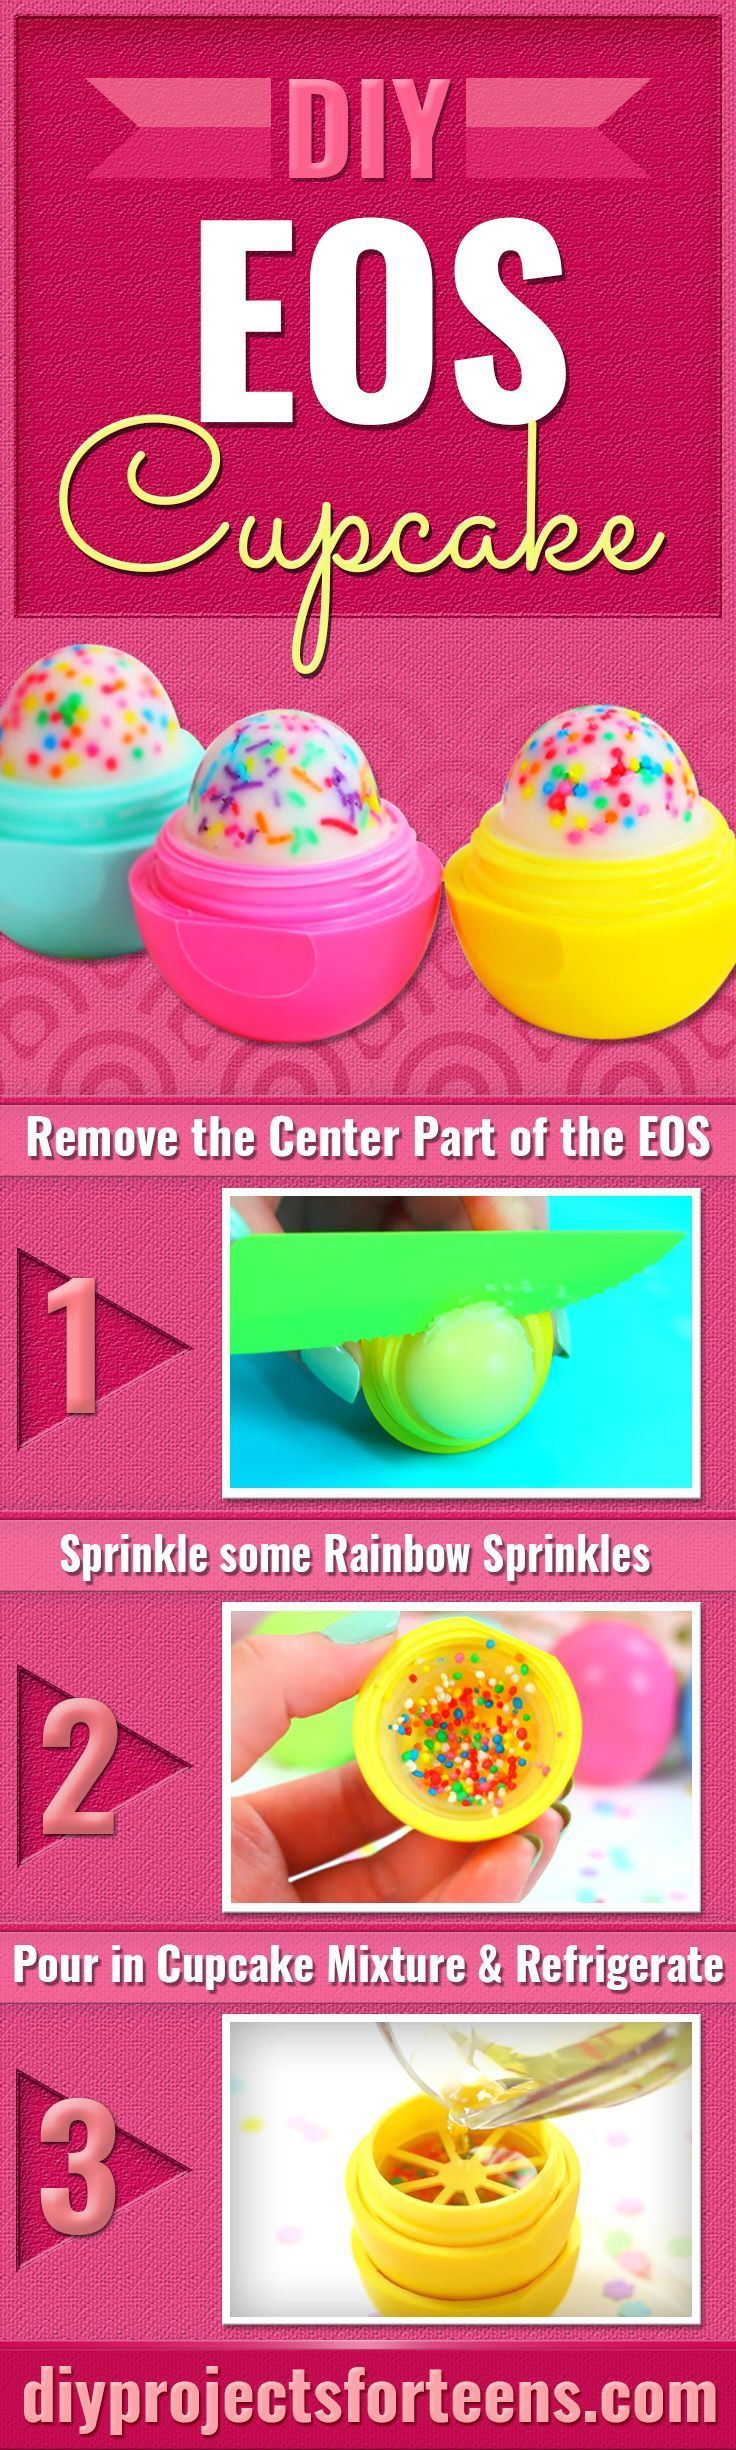 Cupcake EOS How To and Tutorial - Make Cool Homemade Lip Balm Containers for Your EOS - Easy DIY Cupcake Lip Balm With Sprinkles - Fun DIY Projects and Crafts for Teens, Teenagers, Tweens and Kids To Make A Home